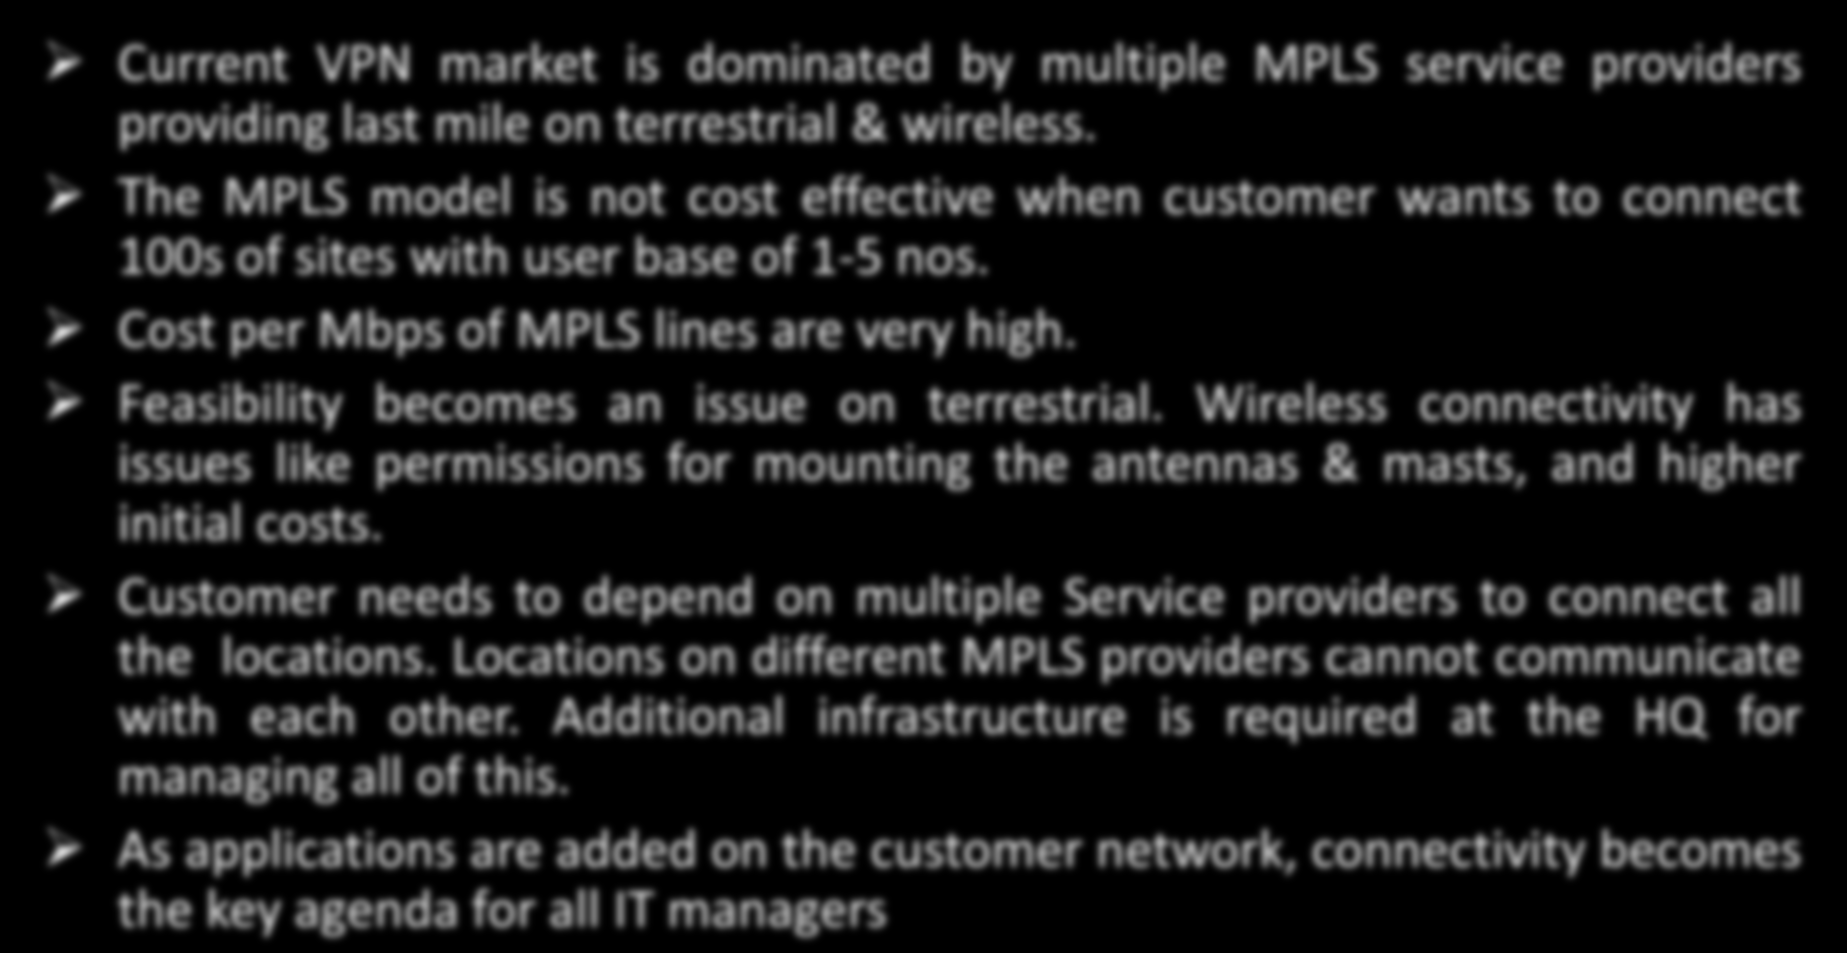 Current VPN Market Scenario Current VPN market is dominated by multiple MPLS service providers providing last mile on terrestrial & wireless.